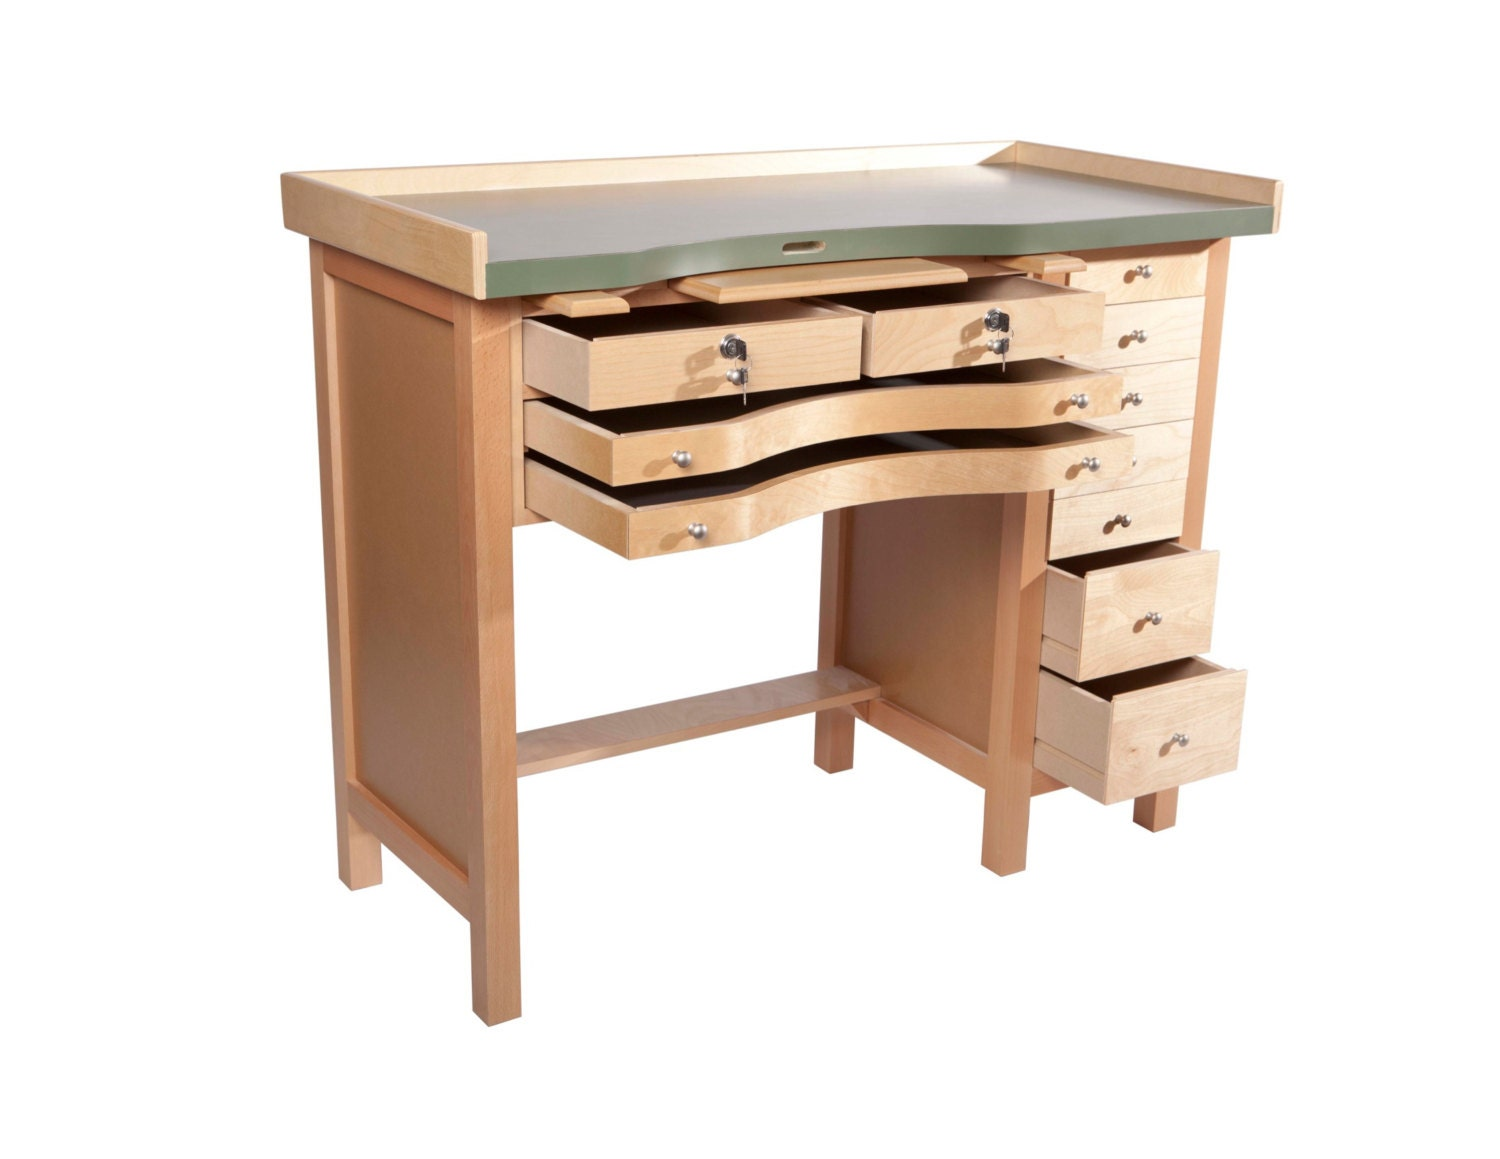 Items Similar To Professional Jewelers Workbench Handcrafted In The Usa On Etsy